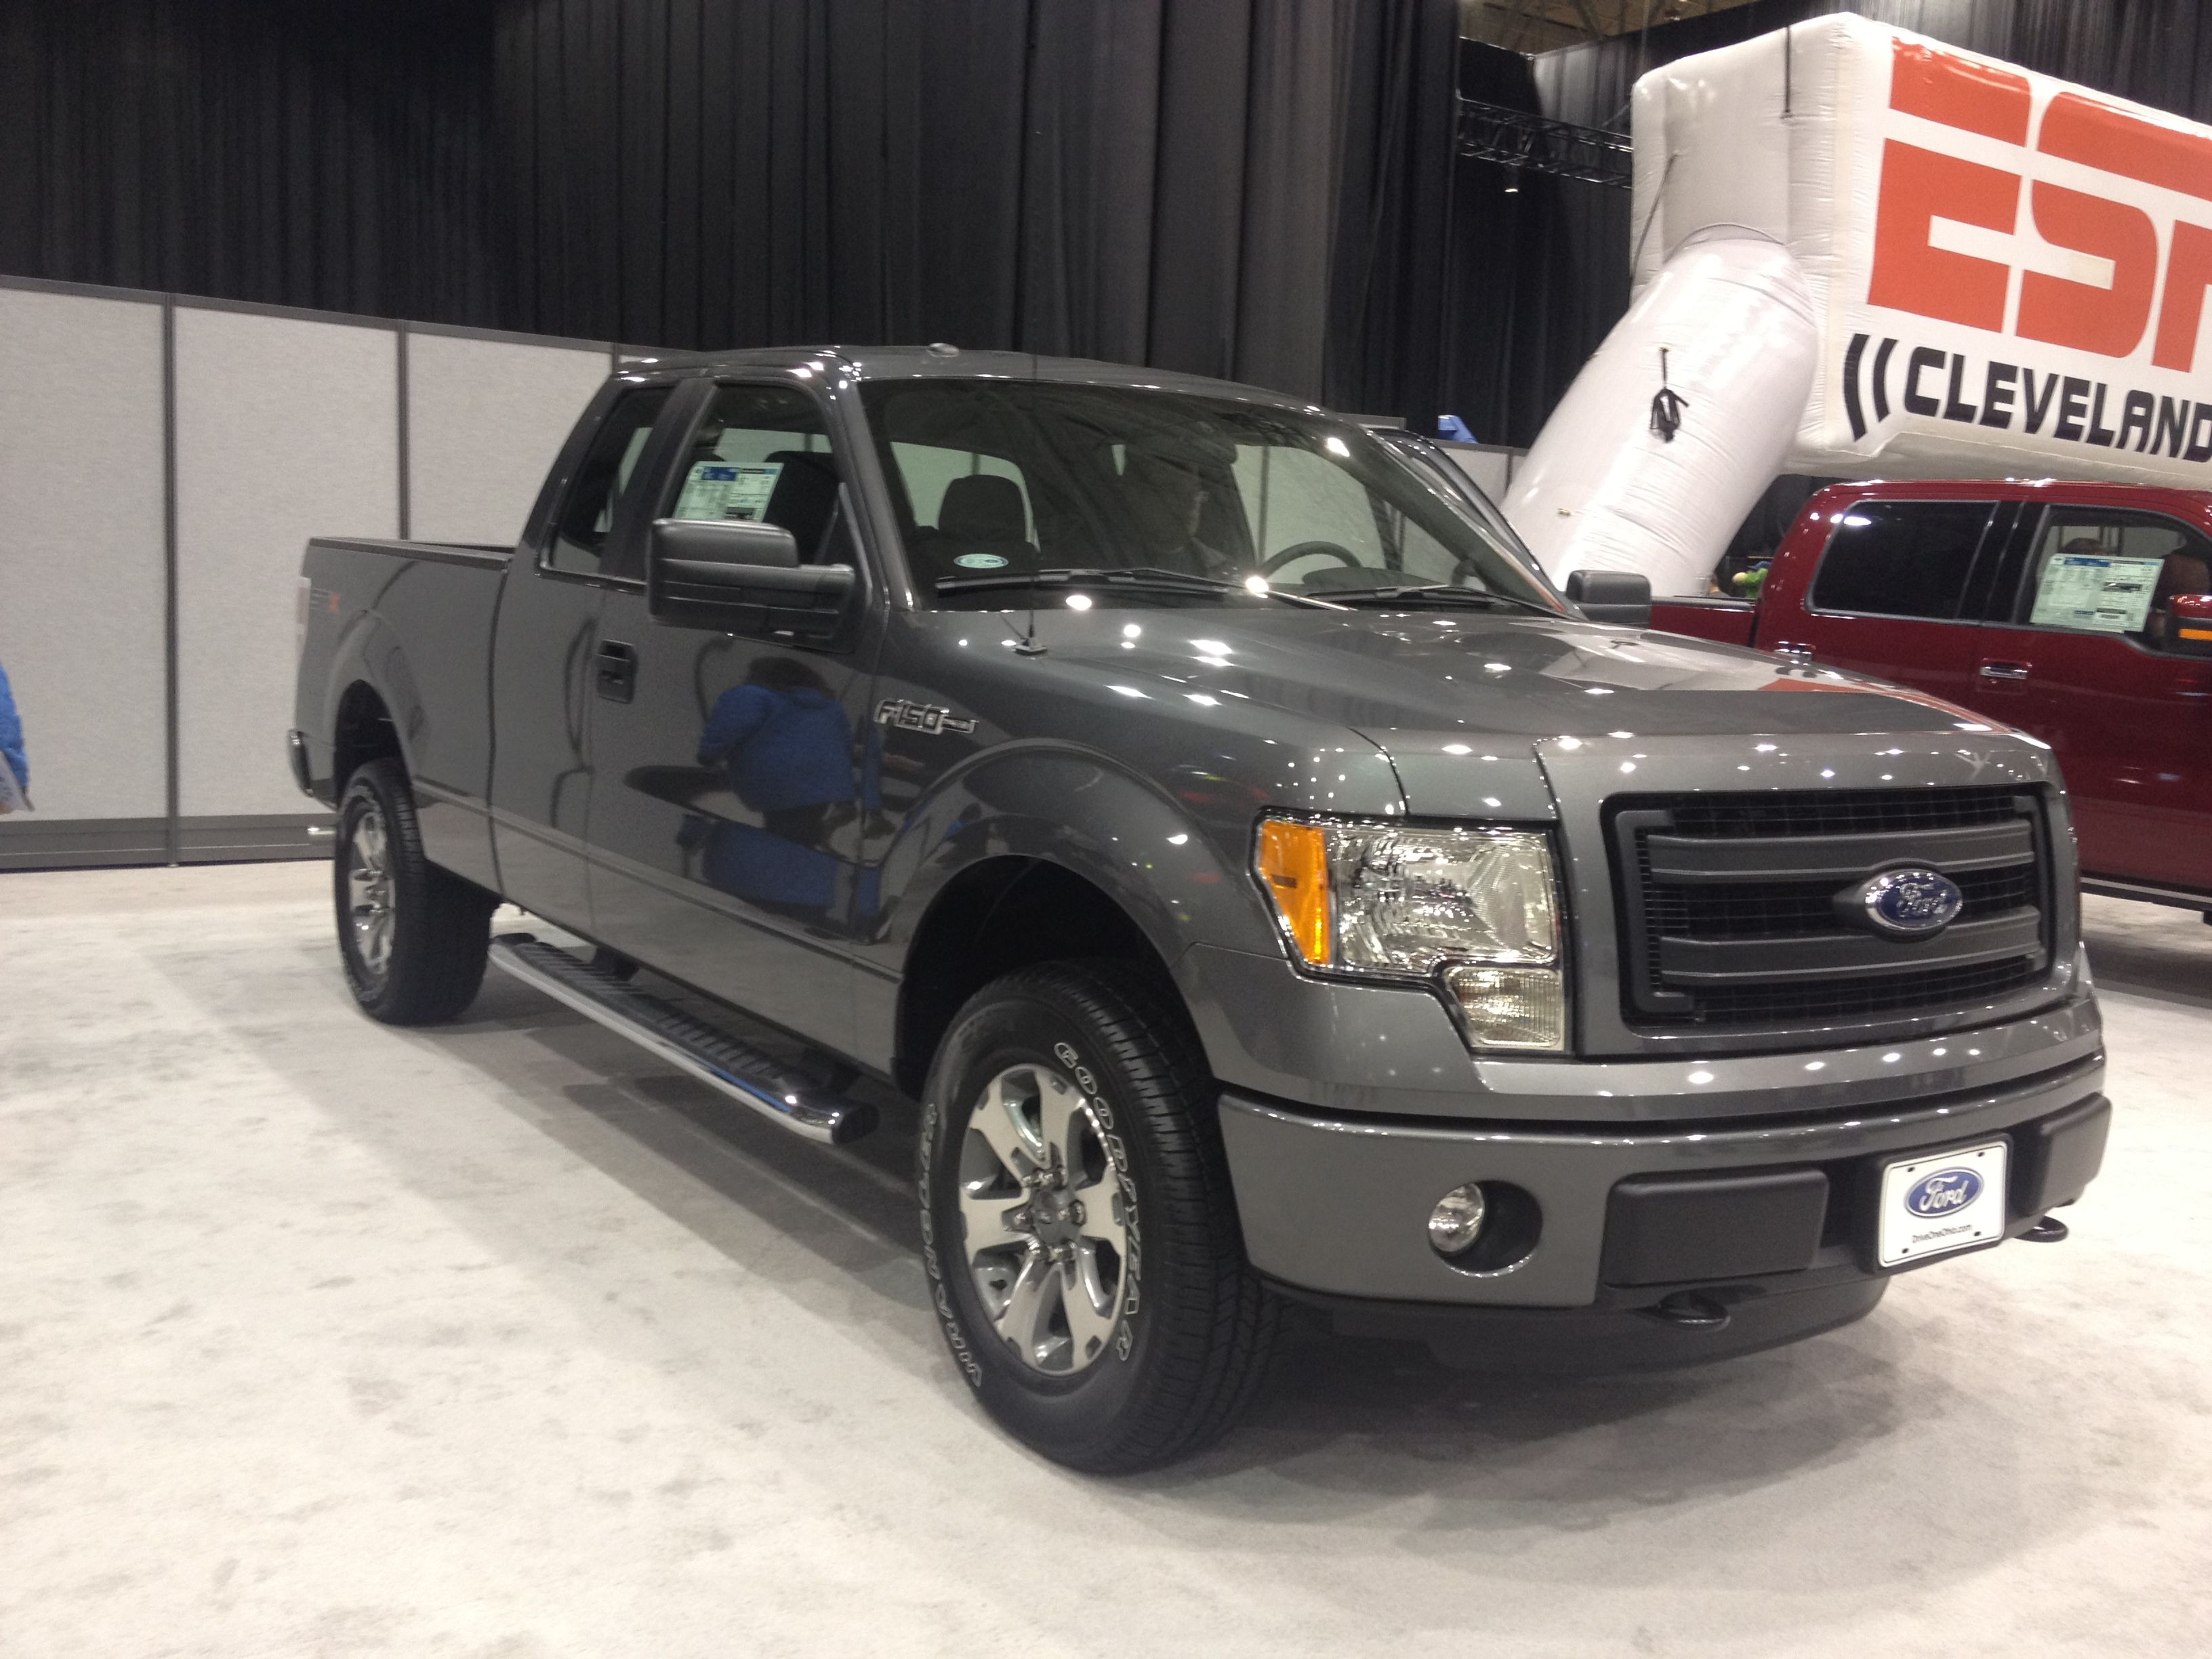 2013 ford f 150 supercab in sterling gray metallic 2013 cleveland rh pinterest com